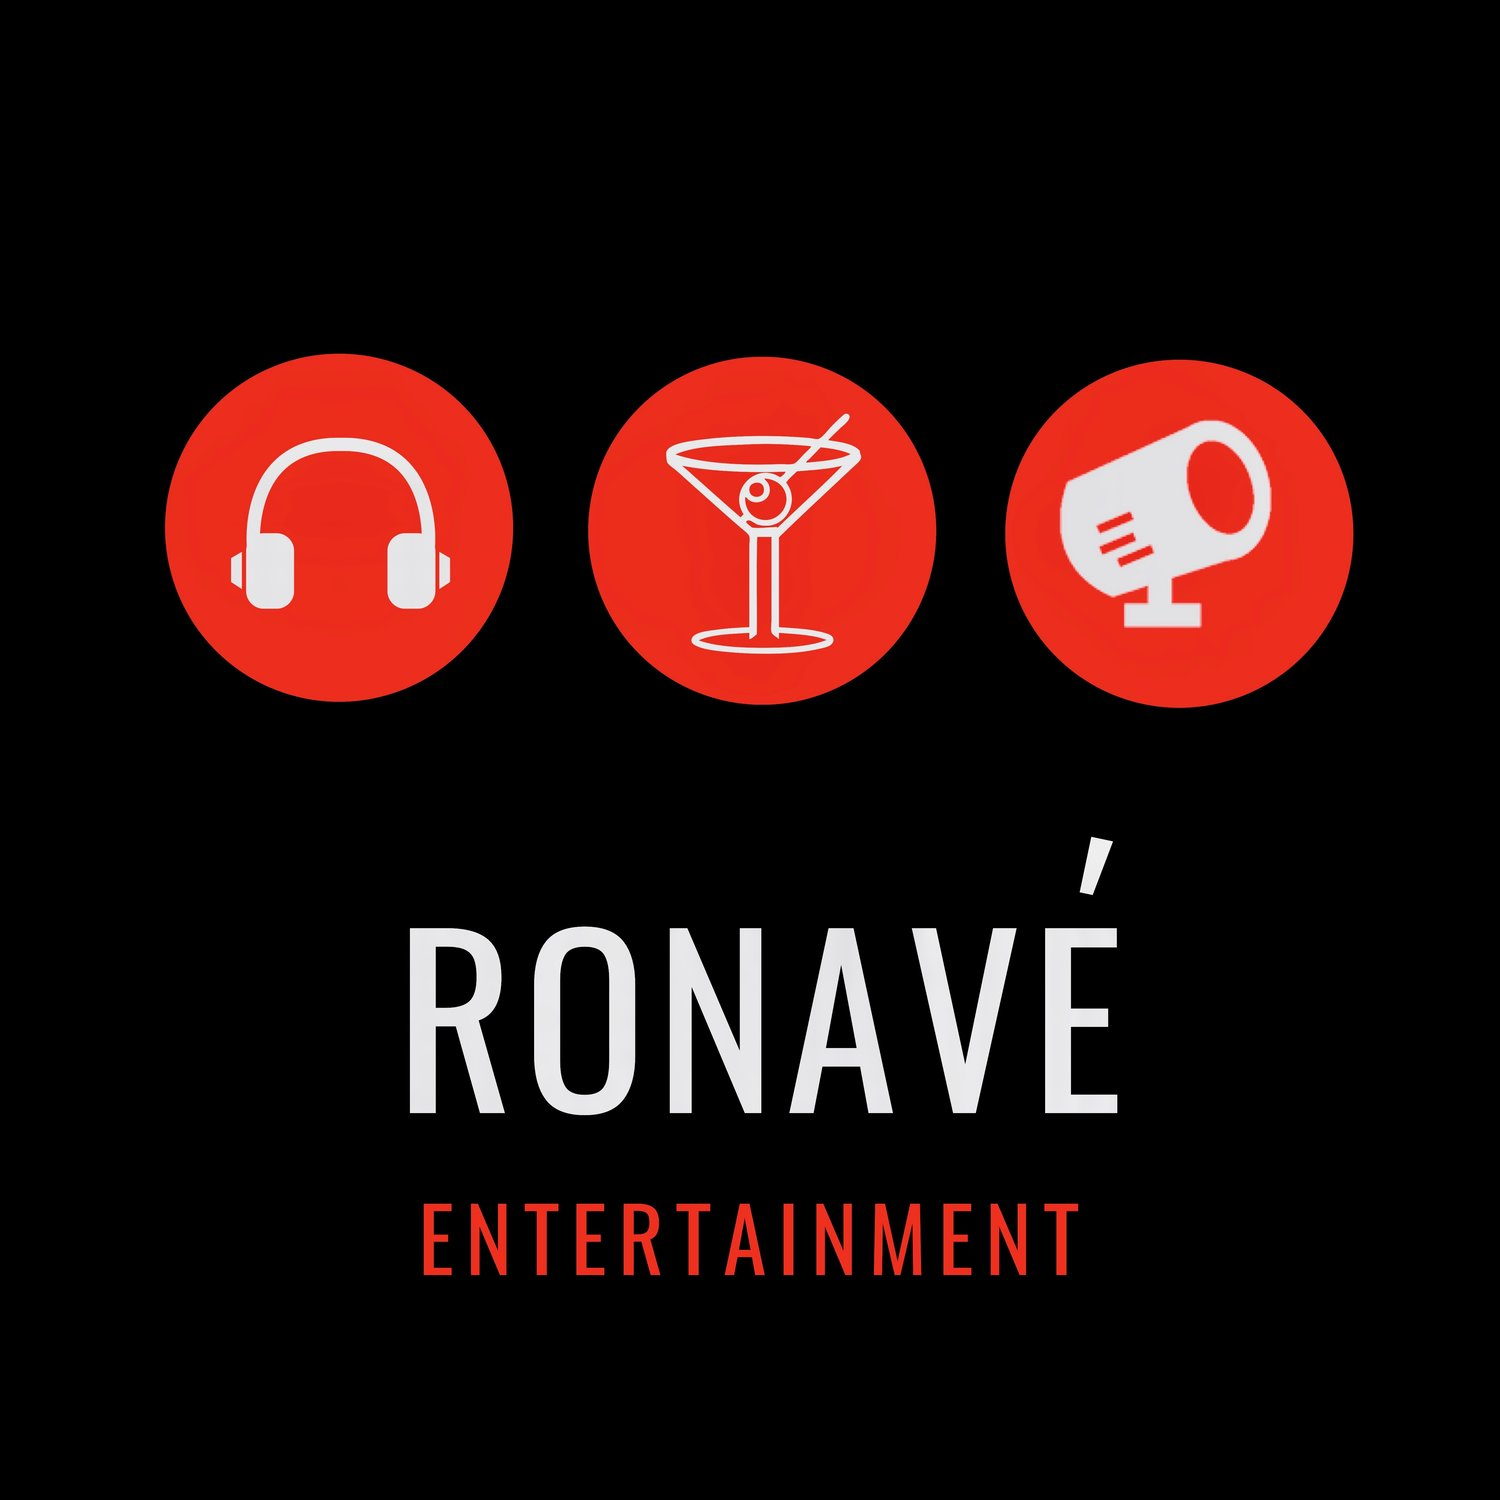 RONAVÉ Entertainment